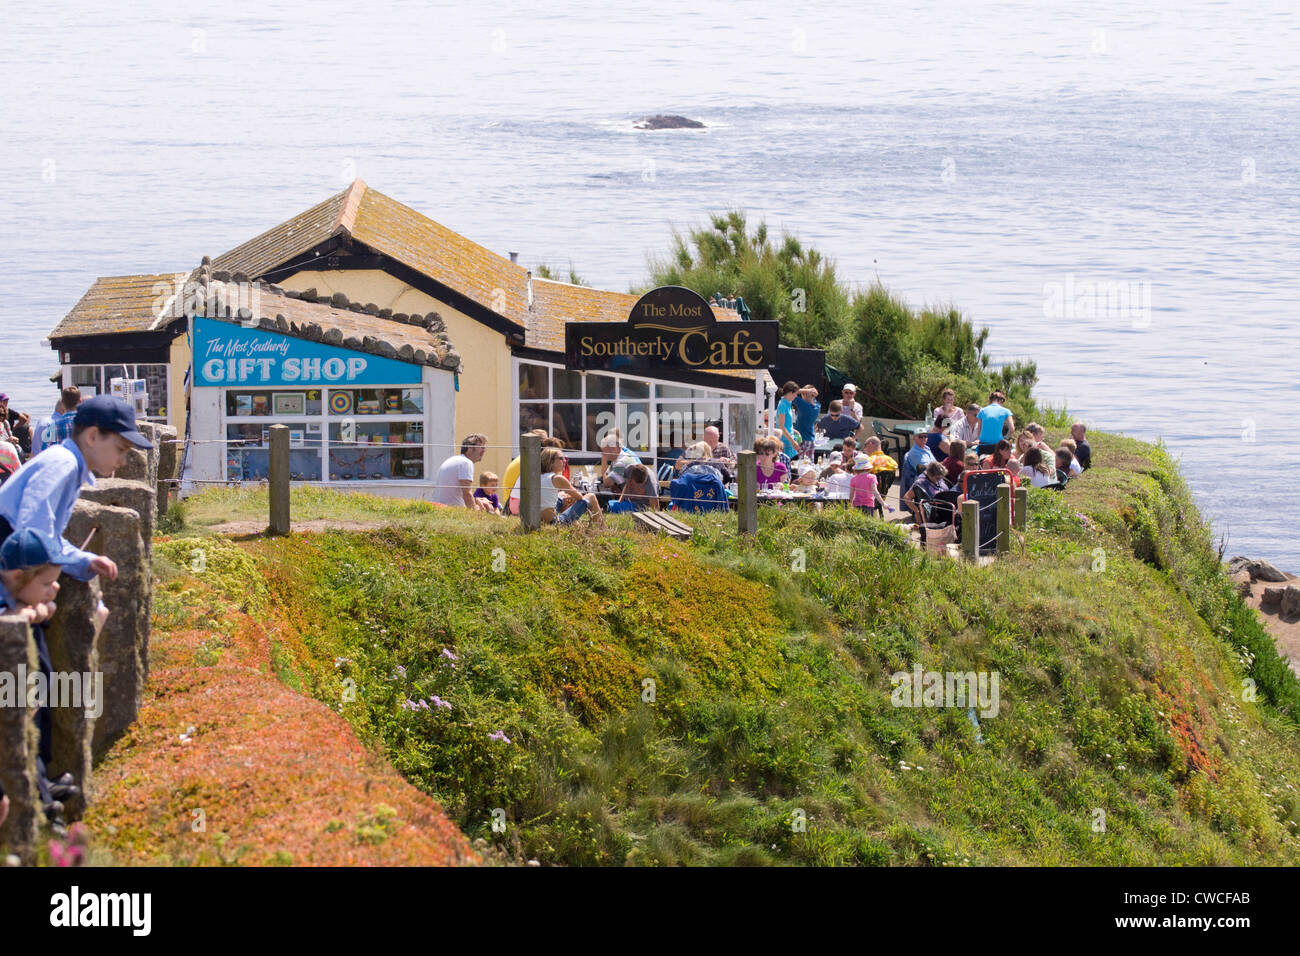 The most southerly cafe n the Cornish coast at Lizard Point - Stock Image